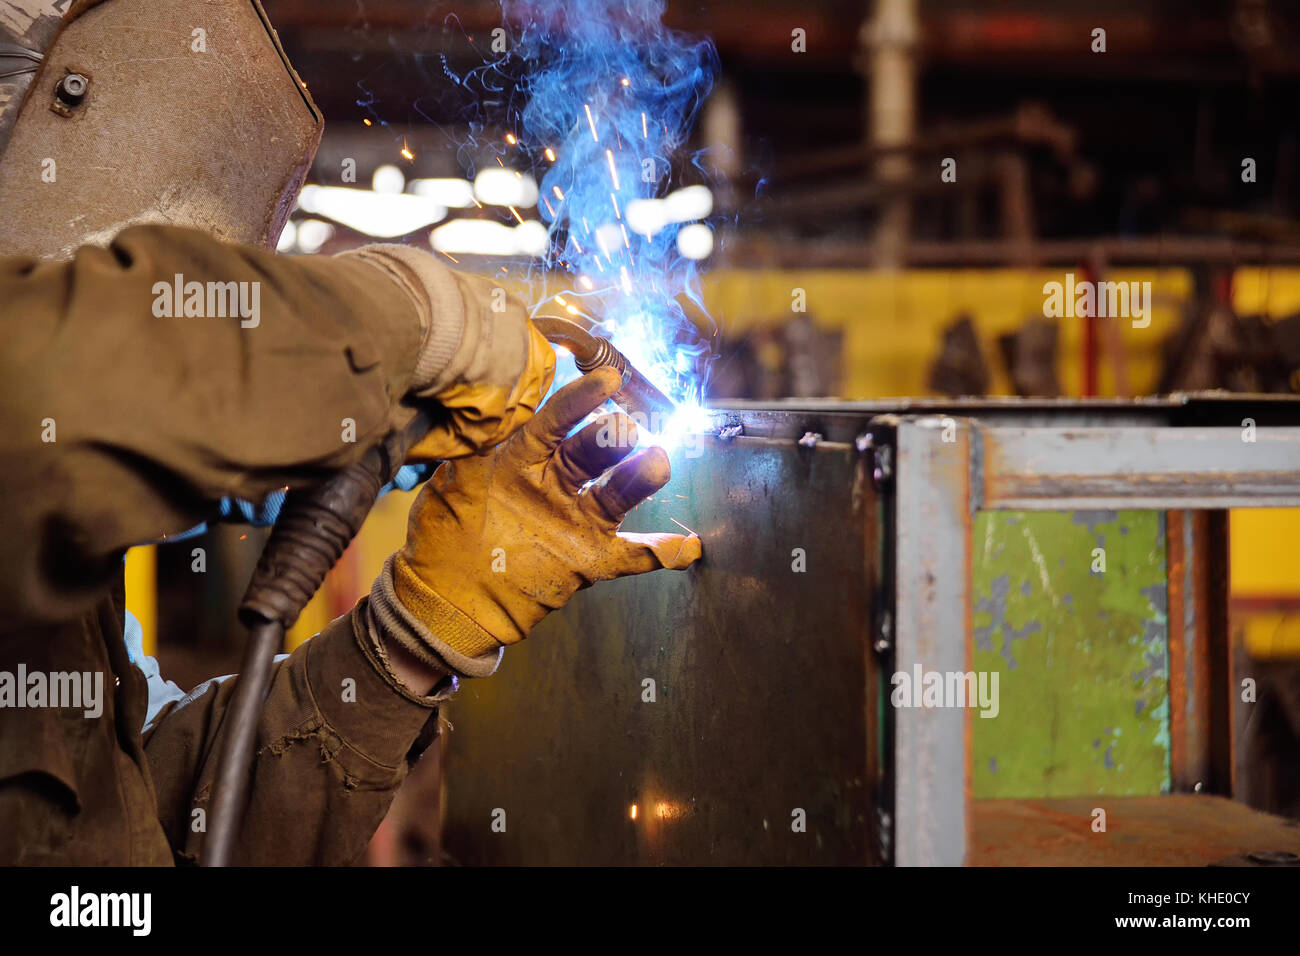 Welder for his work. - Stock Image